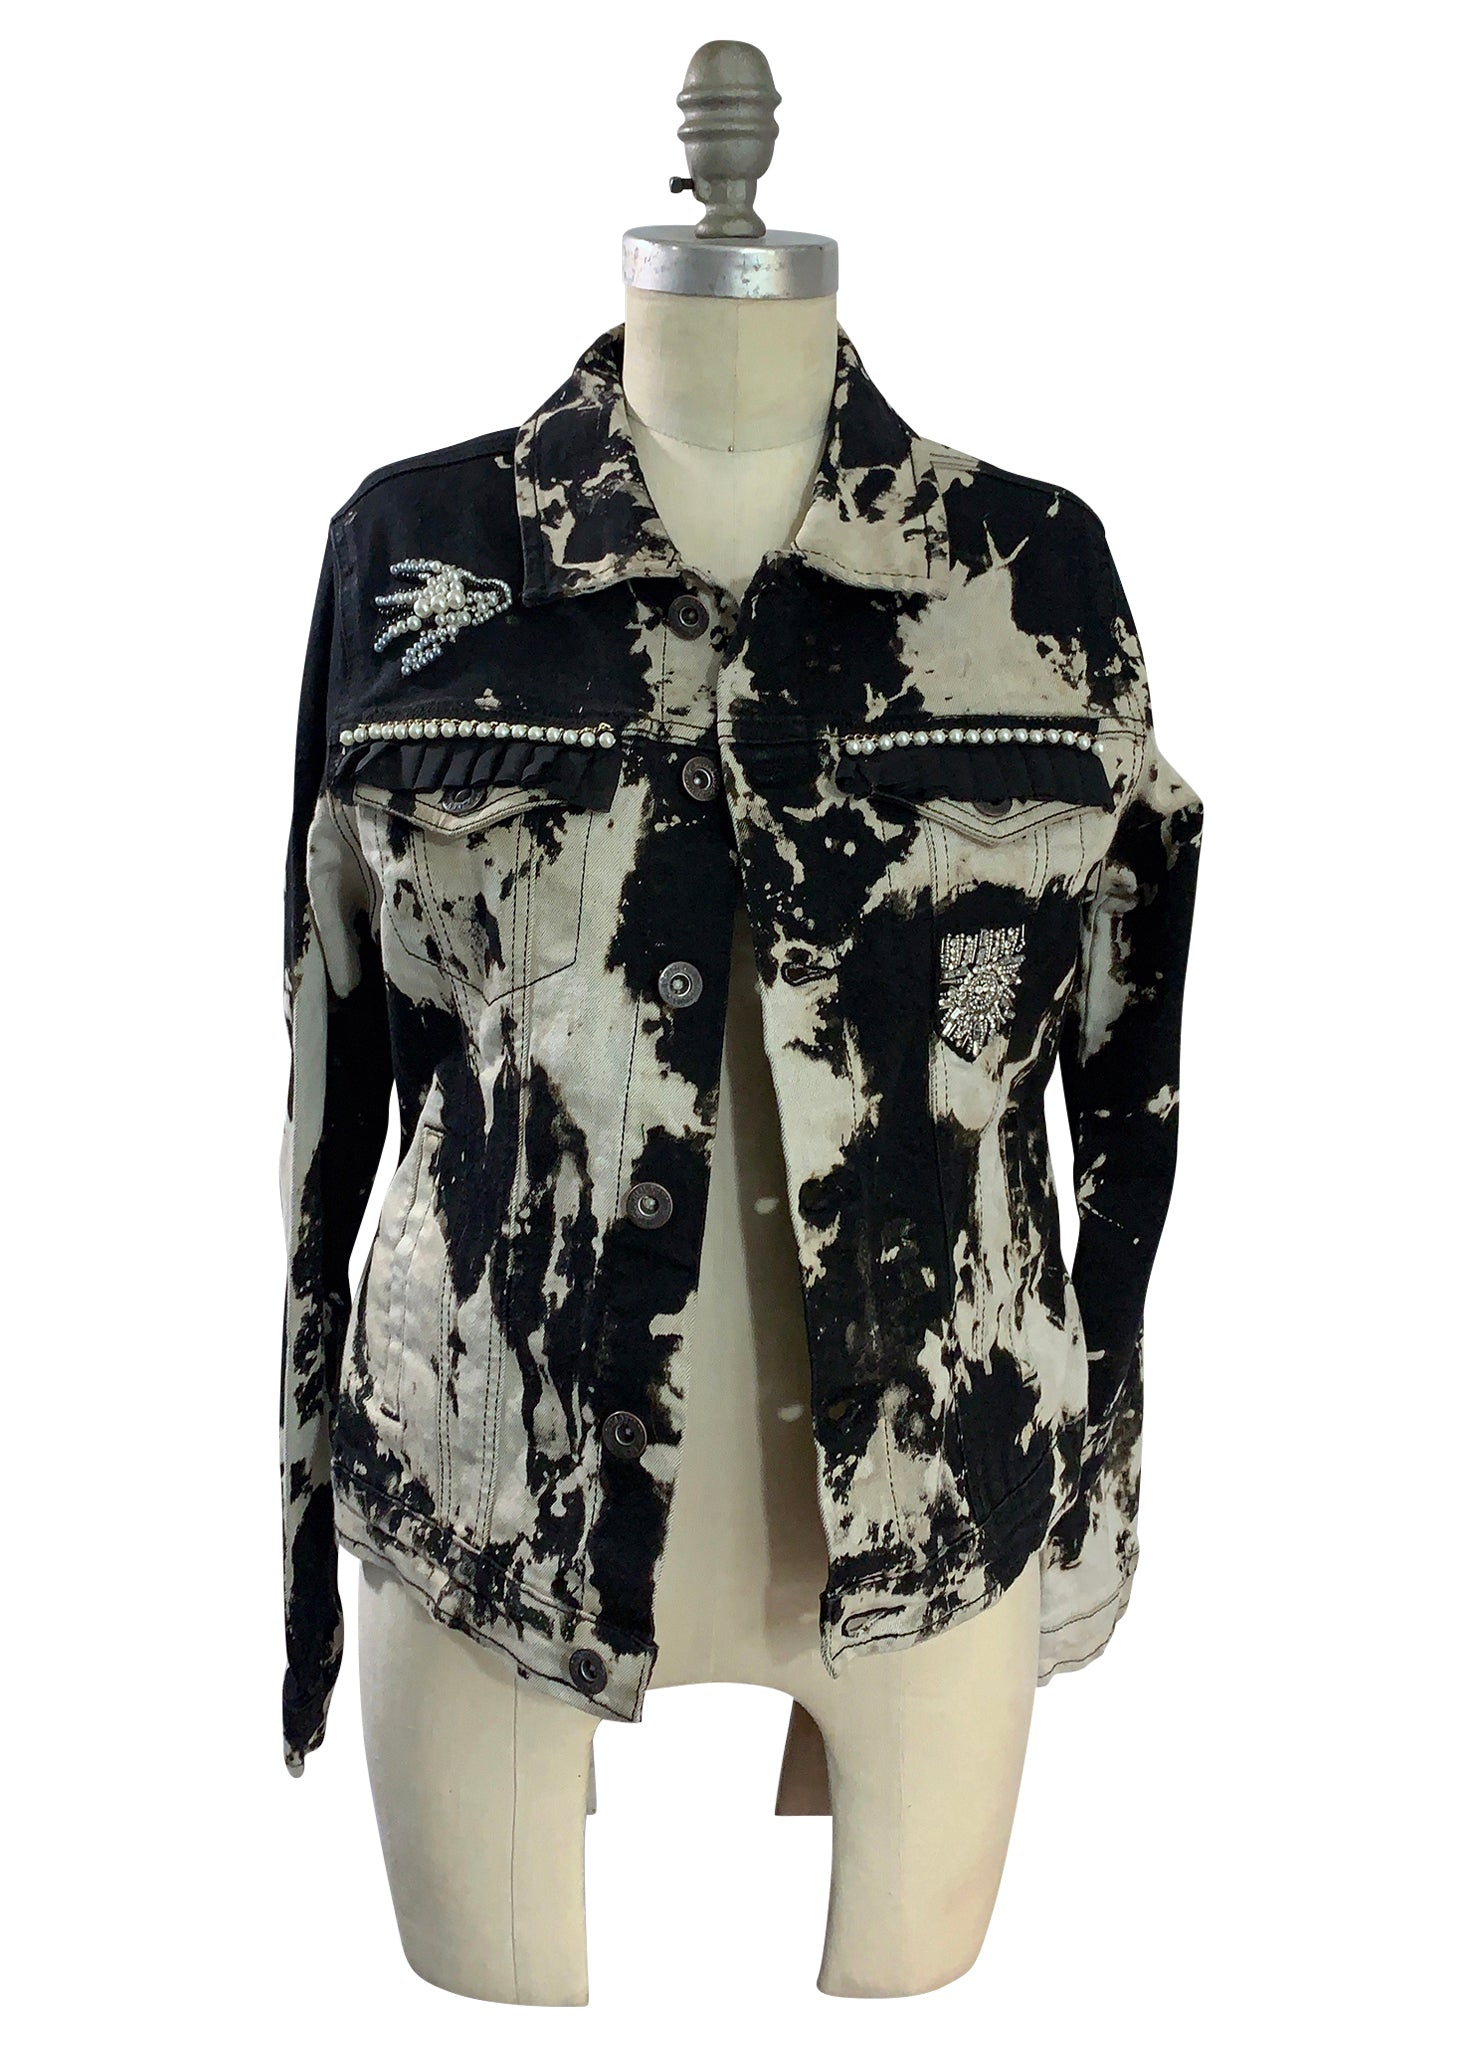 Medium Hand-Dyed Black and White Denim Jacket  -